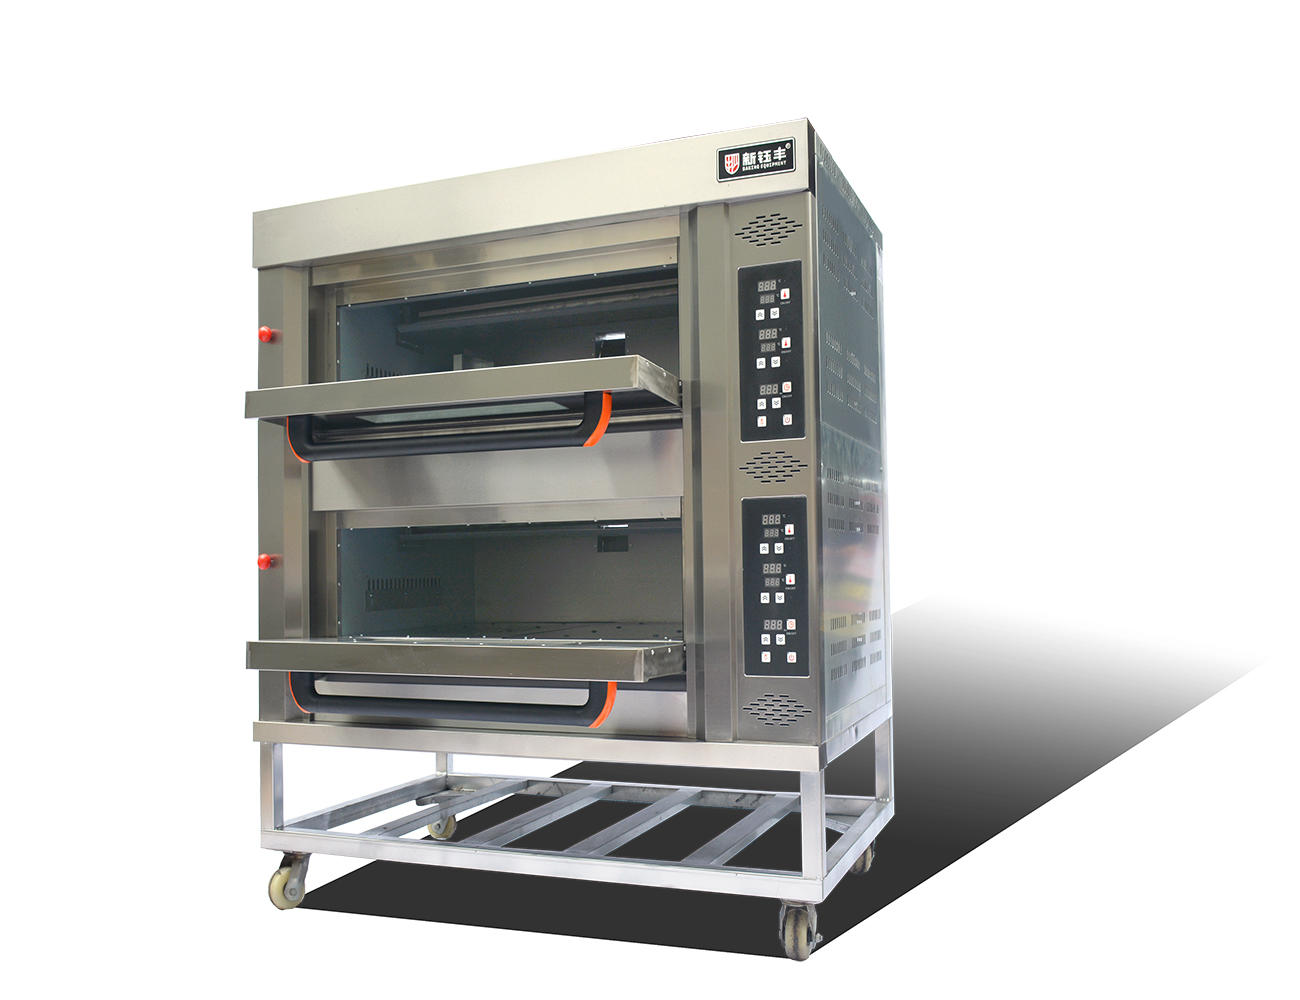 Gas Deck Bread Ovens / Bread Baking Machine 2 Layers 4 Pans